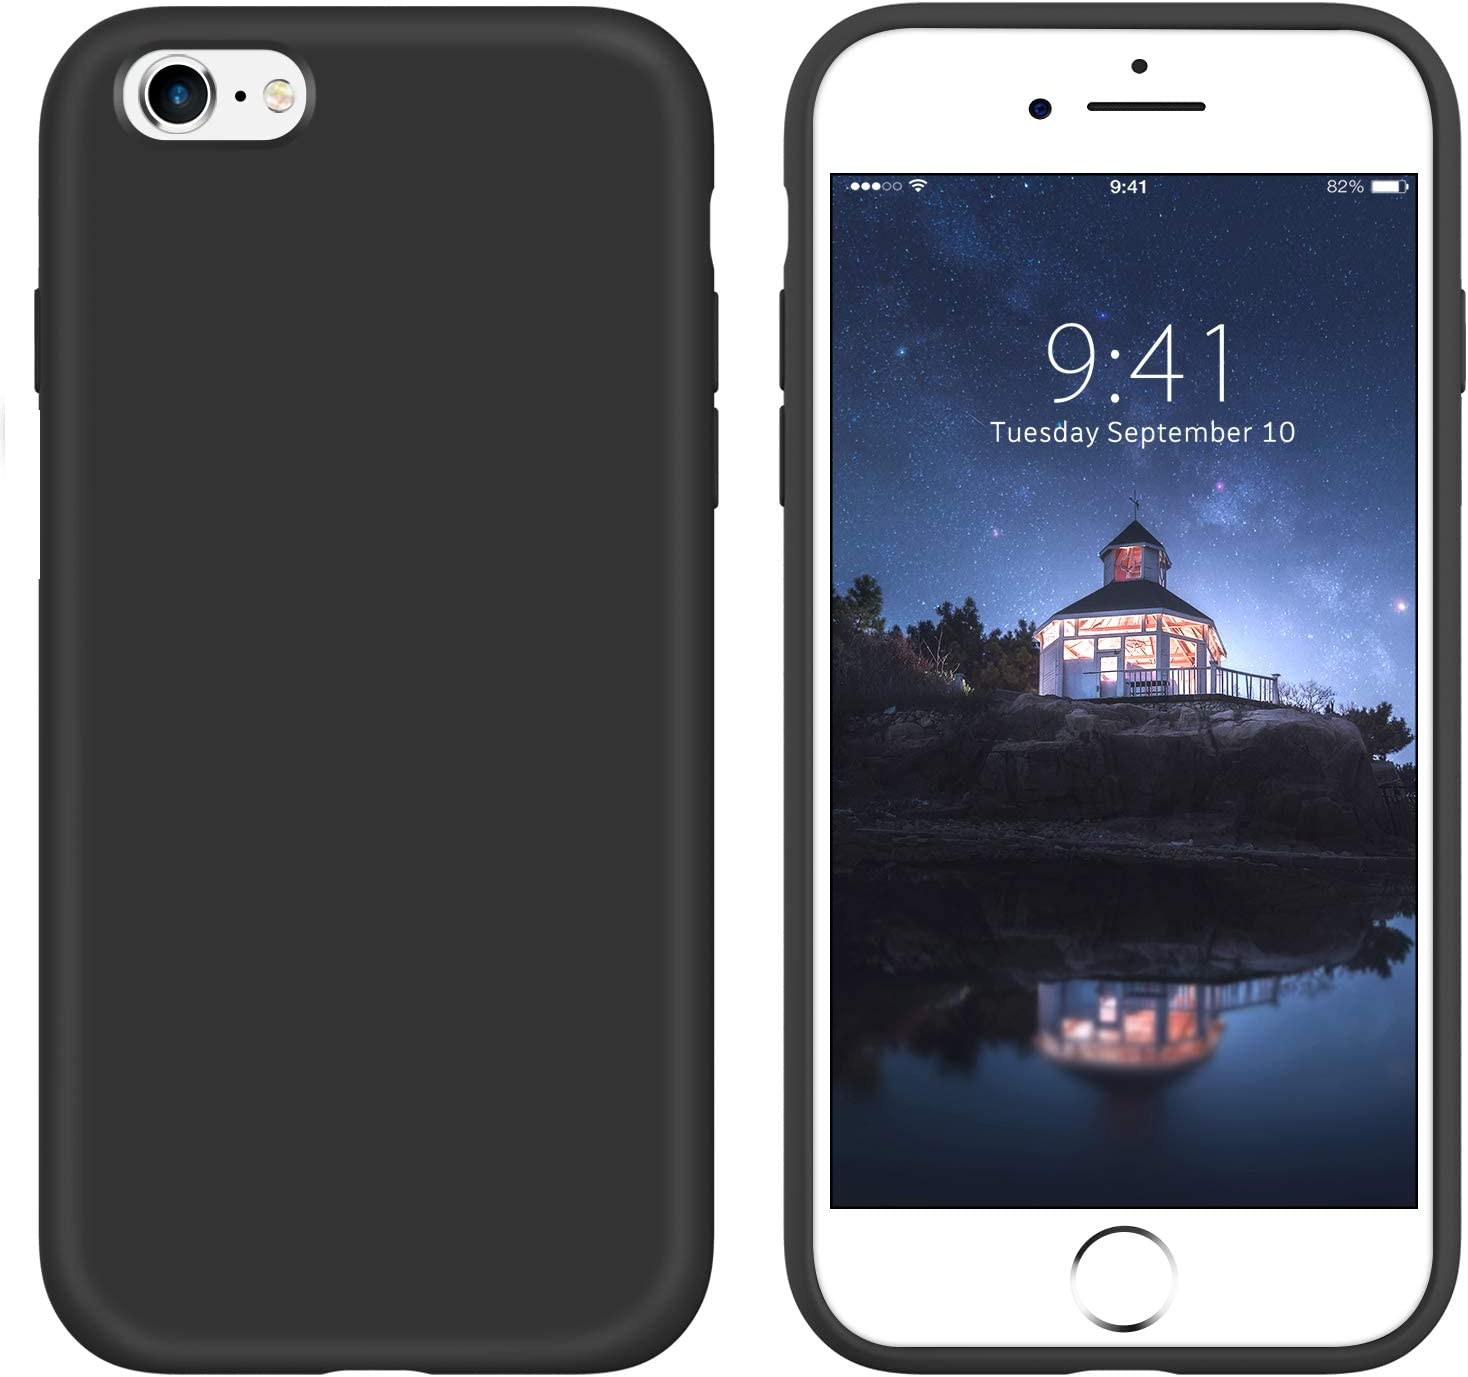 GUAGUA iPhone 6s Case iPhone 6 Case Liquid Silicone Soft Gel Rubber Slim Thin Light Microfiber Lining Cushion Texture Cover Shockproof Full Body Protection Phone Cases for iPhone 6/6S Black